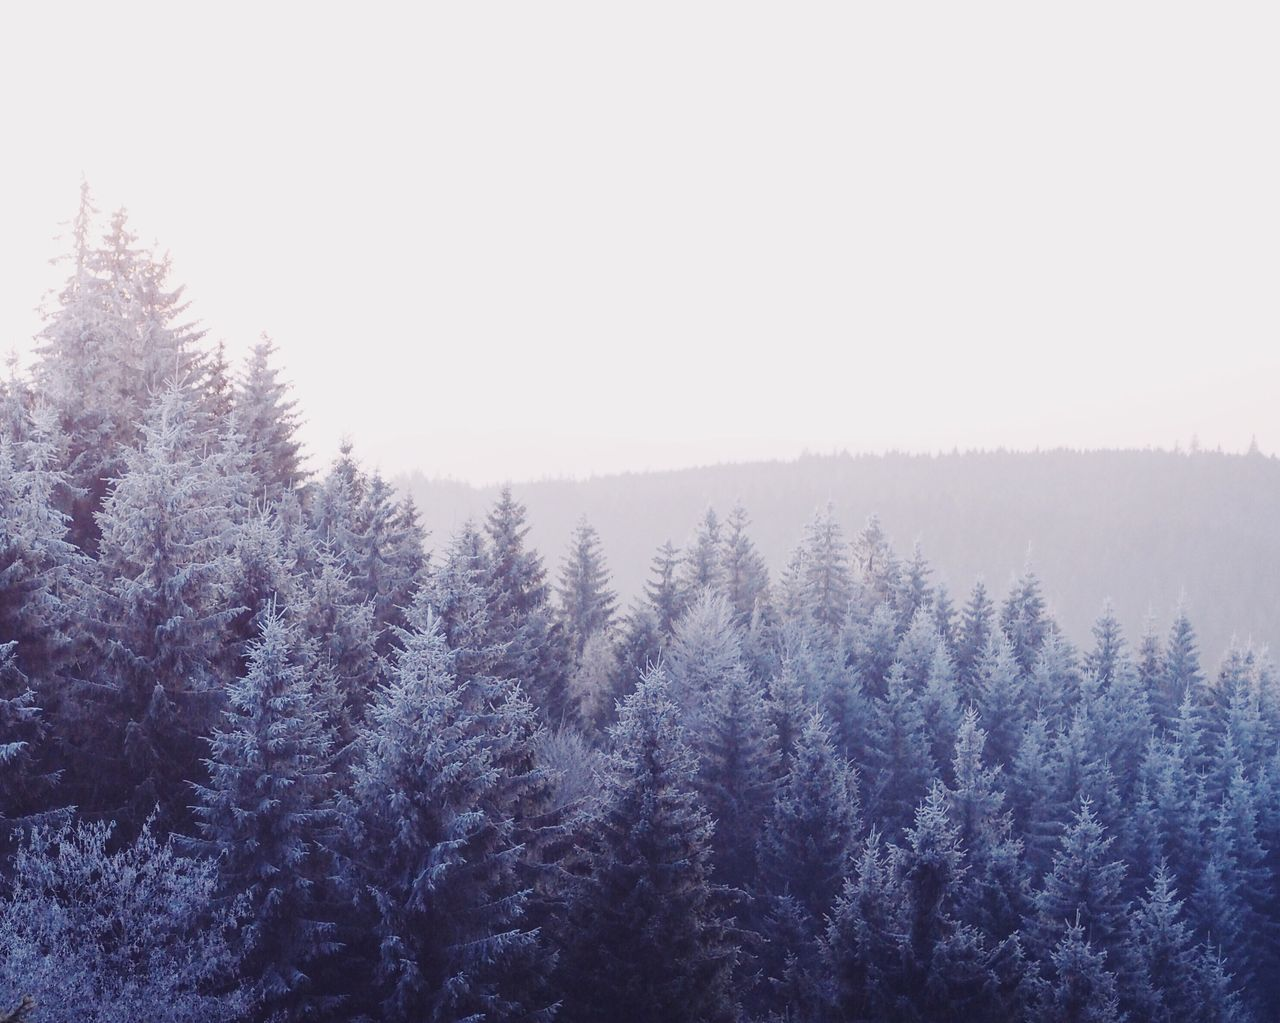 Snow Tree Winter Nature Forest Cold Temperature Scenics Landscape Beauty In Nature Tranquil Scene Outdoors Snowing Coniferous Tree Freshness Day